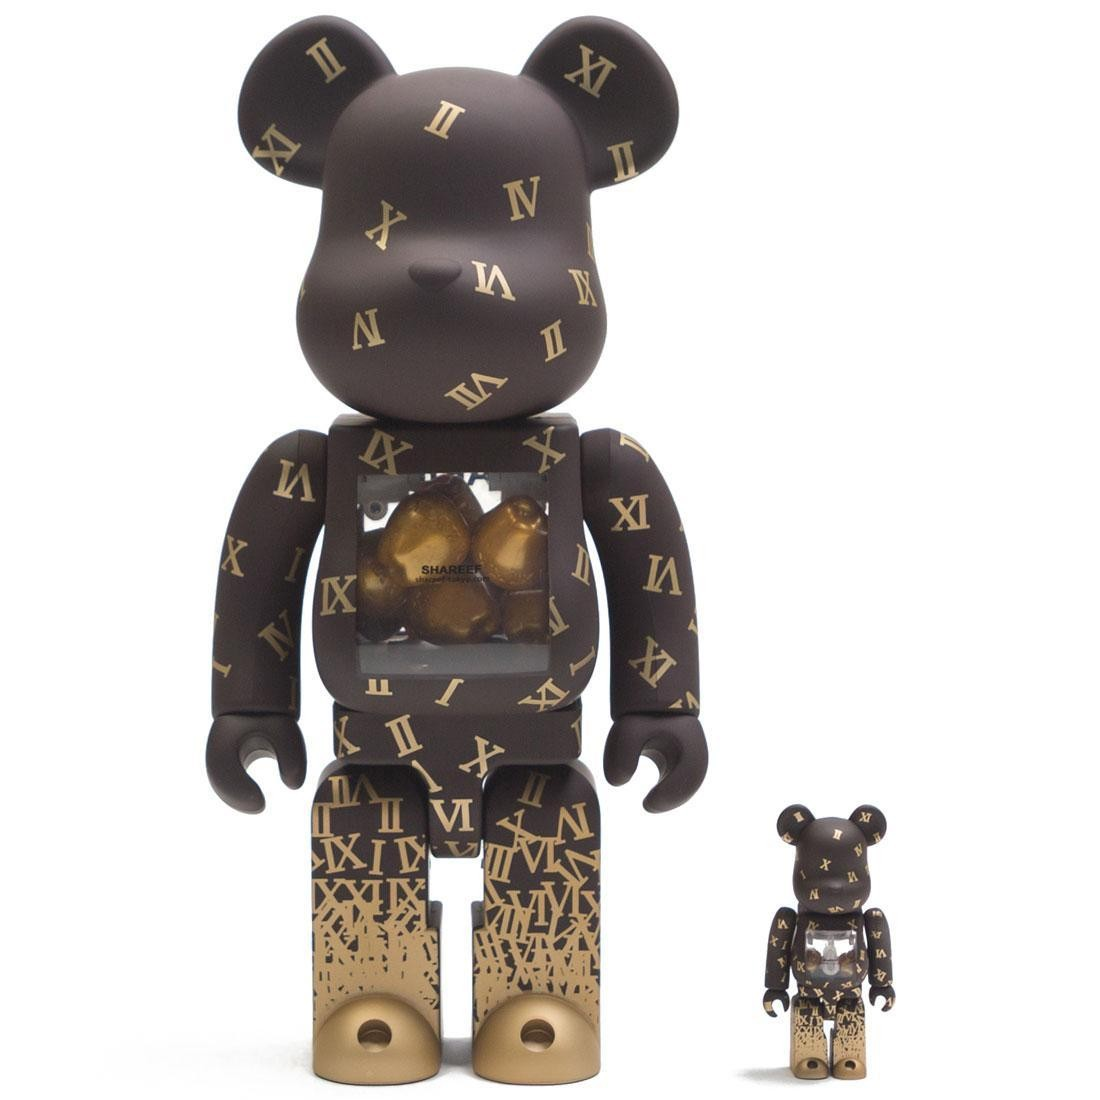 Medicom Shareef 2 100% 400% Bearbrick Figure Set (brown)